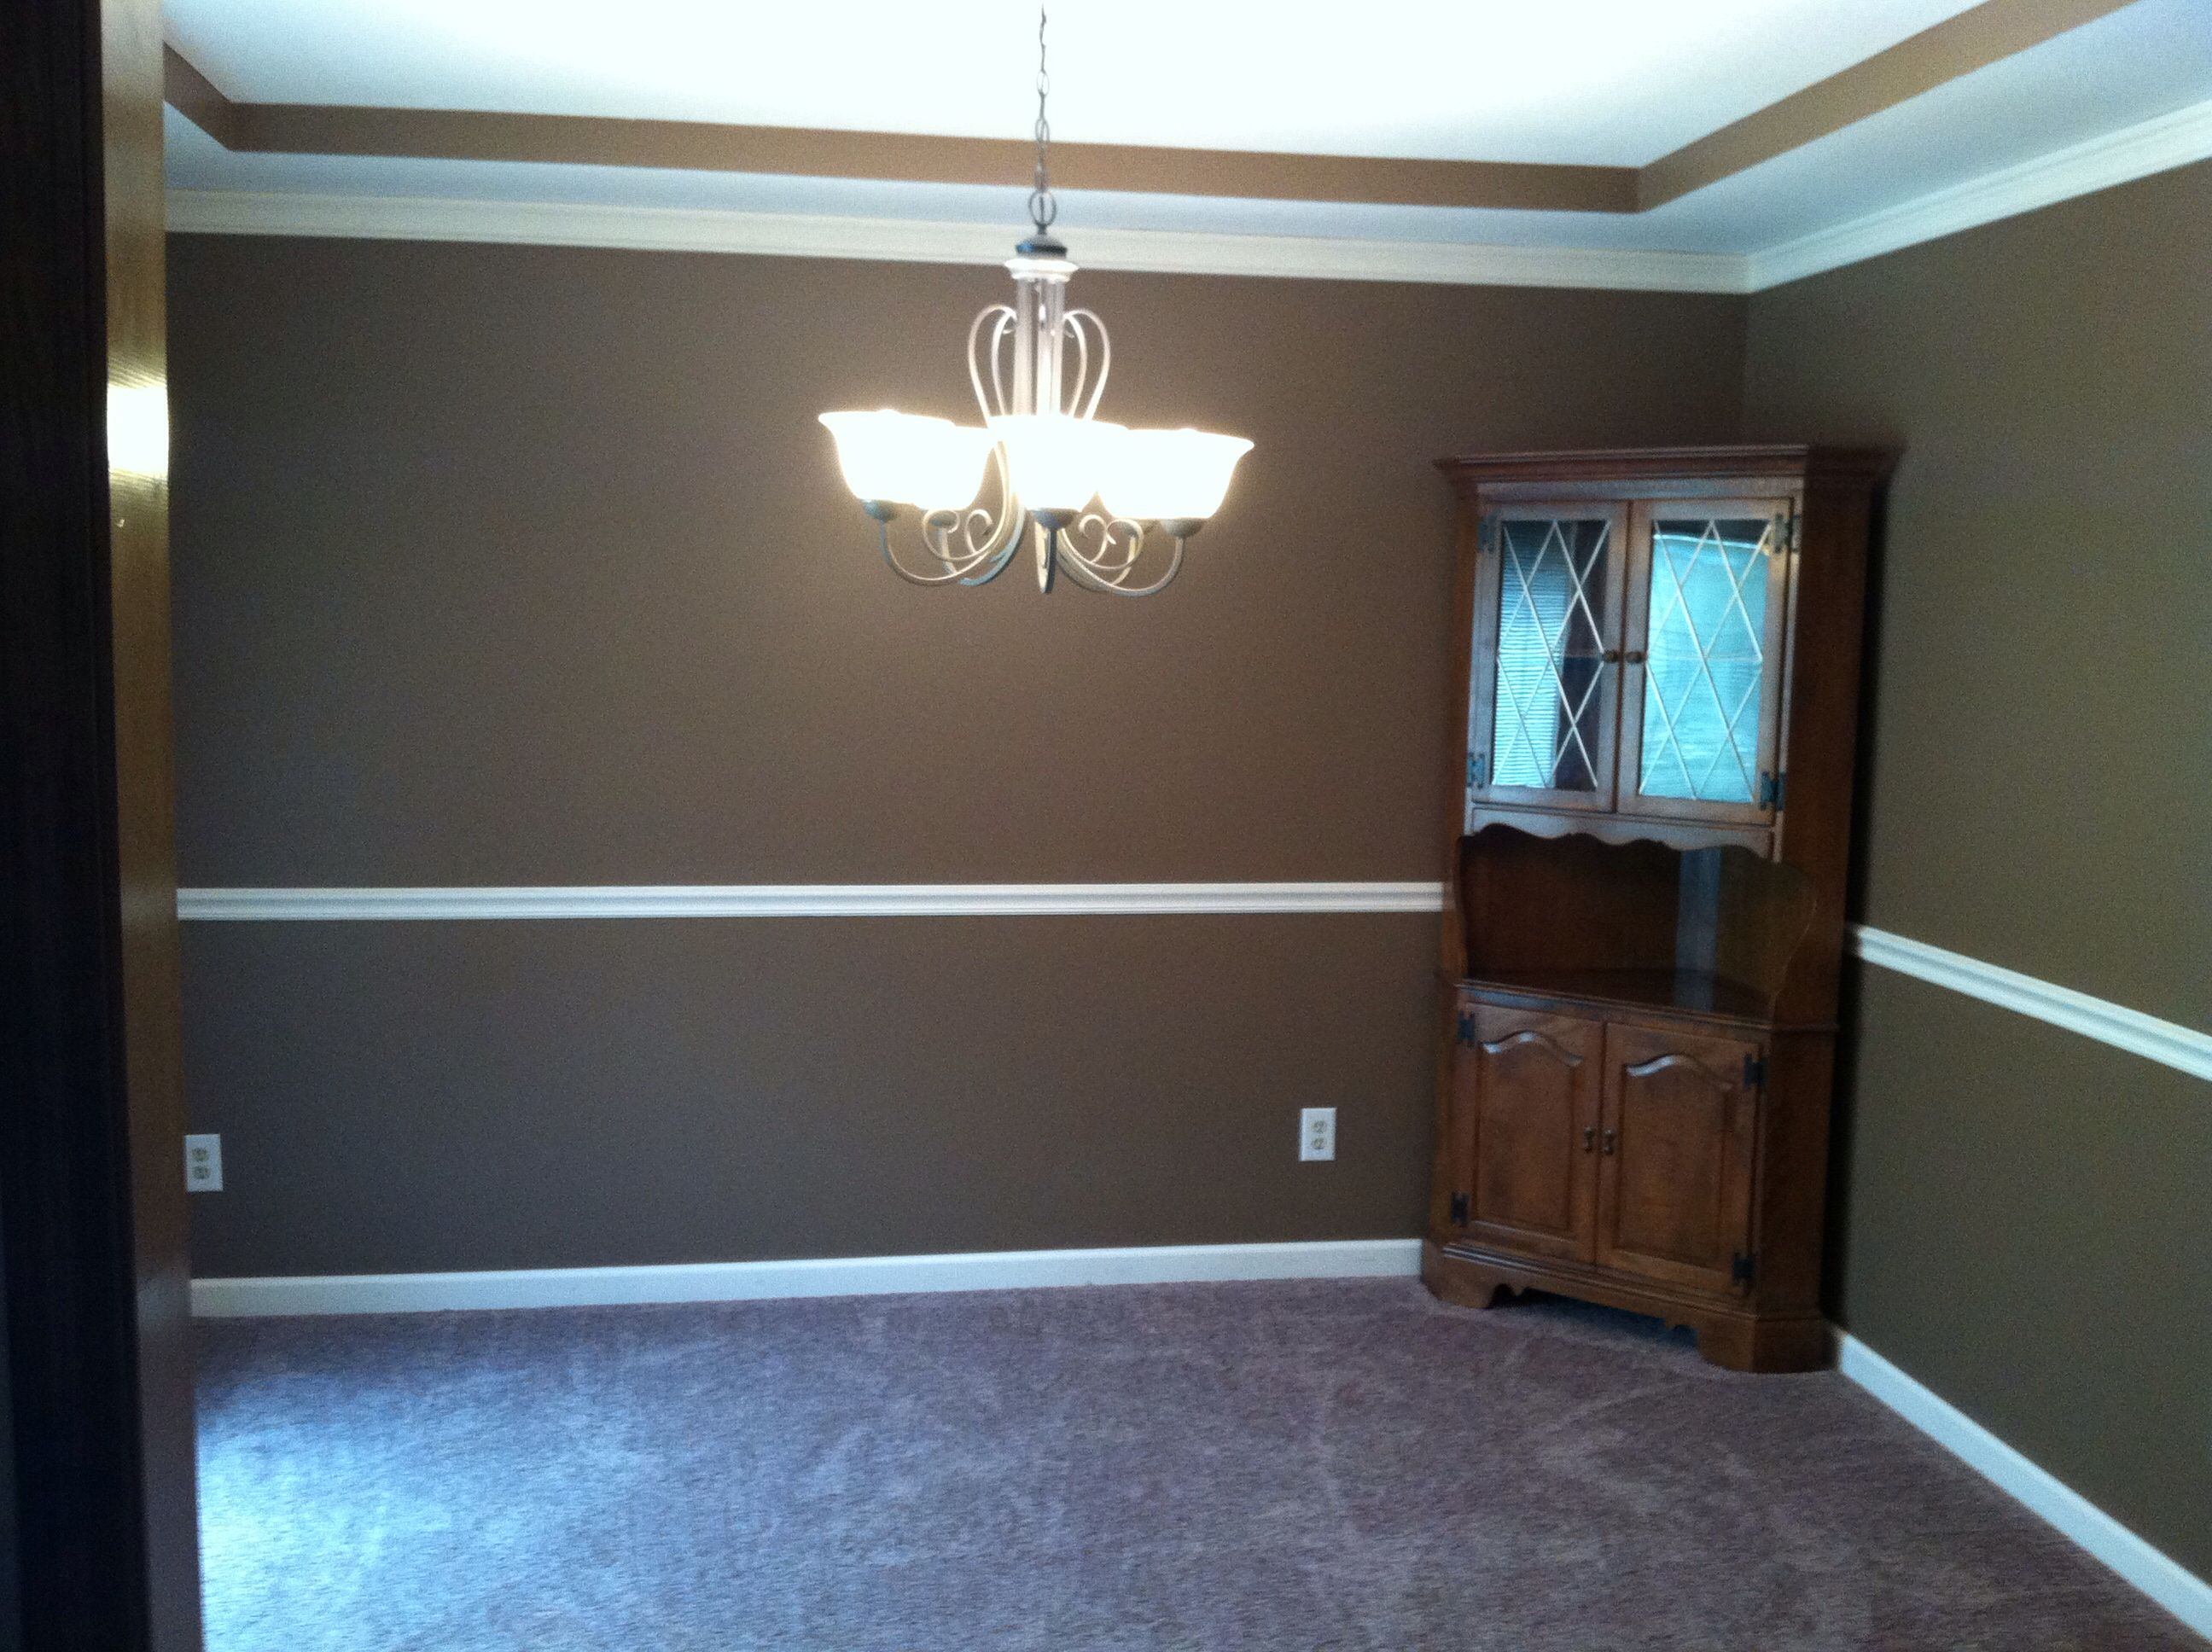 My Dining Room Paint Color Is Sherwin Williams Down Home